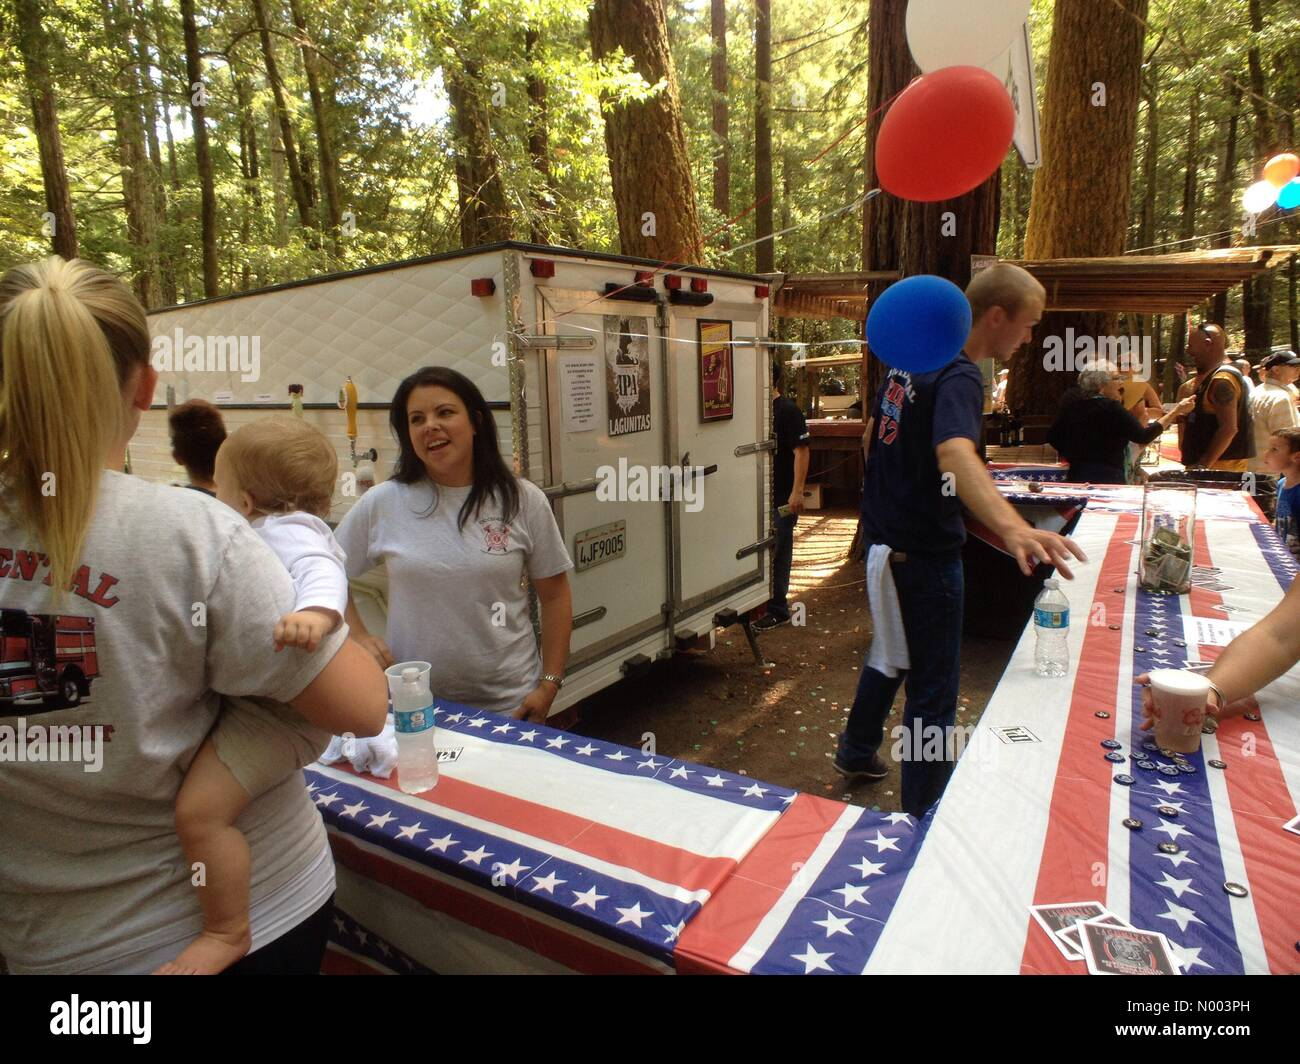 California, USA. 19th July, 2015. Volunteers sell beer at the Occidental Volunteer Fire Department annual BBQ. Credit: - Stock Image